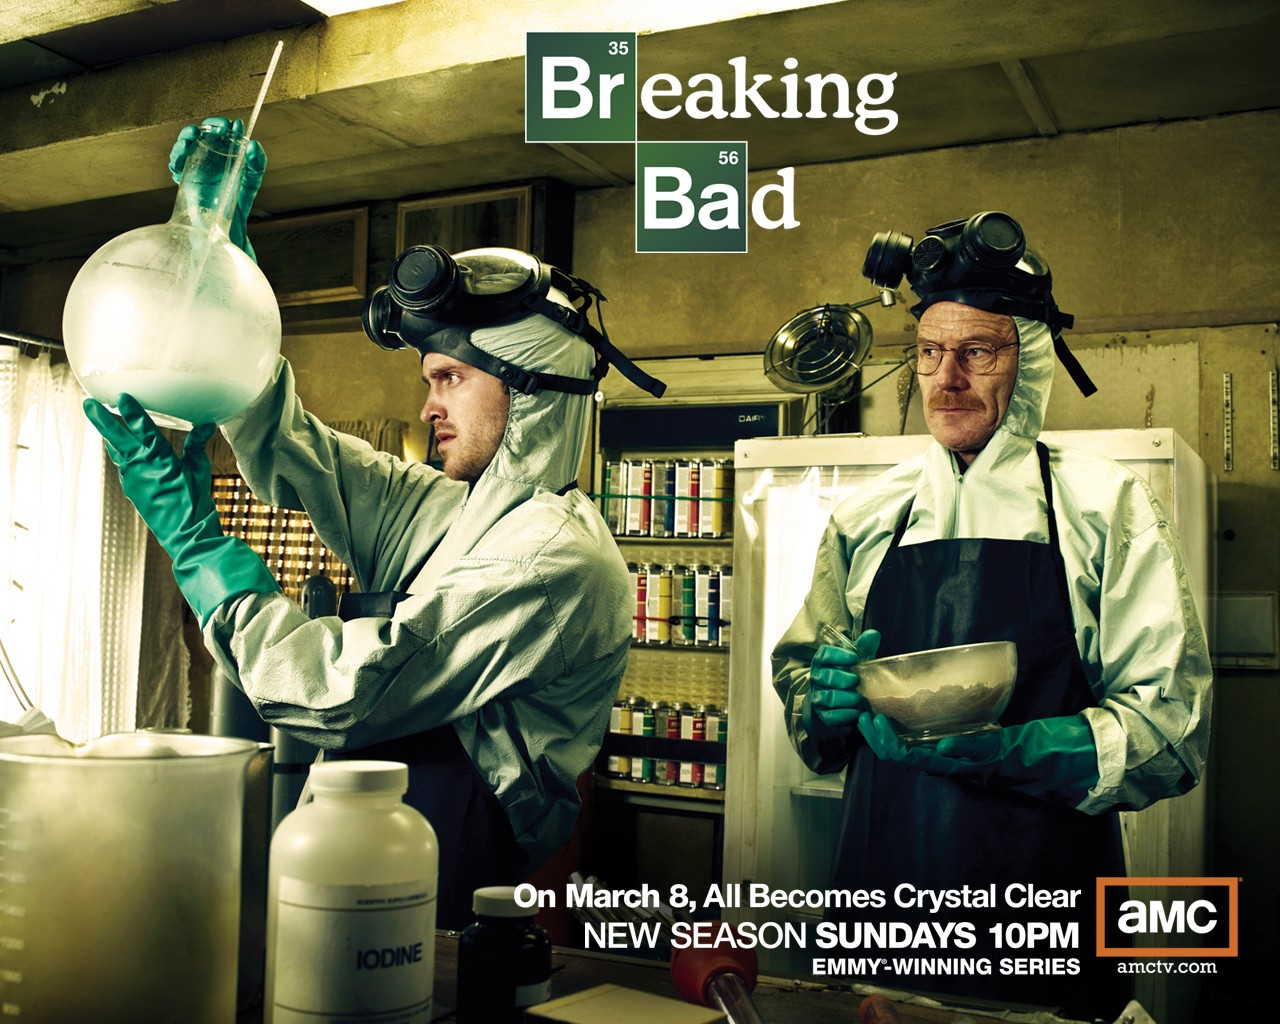 [MULTI] Breaking Bad , Saison 05 [VOSTFR] [01/??] [HDTV]